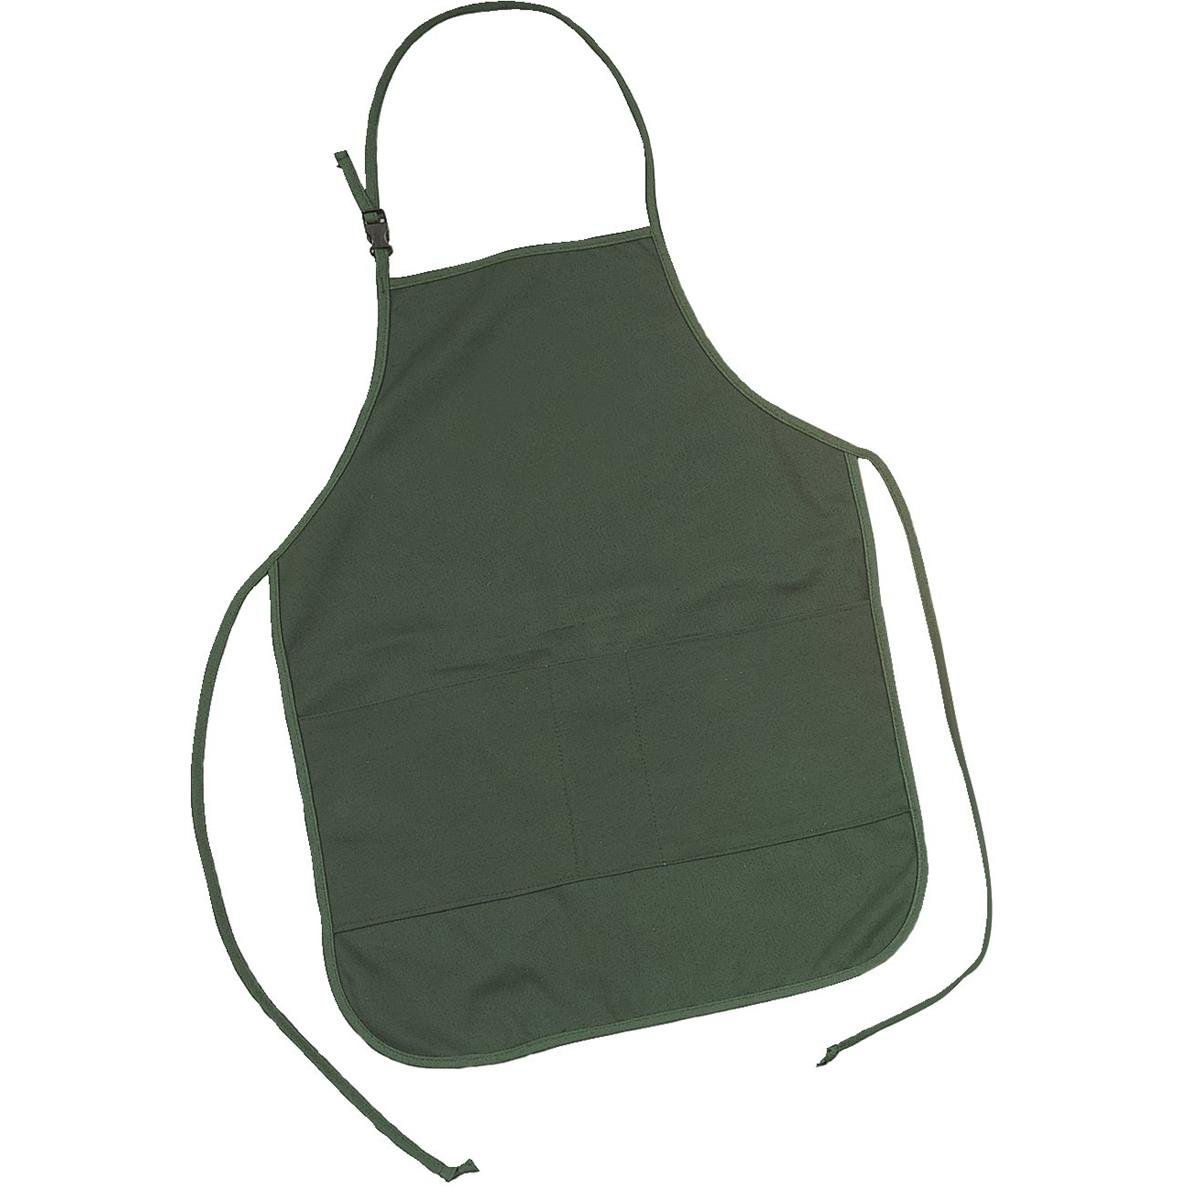 GEMPLER'S Heavy-Duty Cotton Duck Work Apron, Ideal for Garden Centers, Green Houses or Nurseries, Machine and Repair Shops, 26'' L x 21-1/2''W, Forest Green